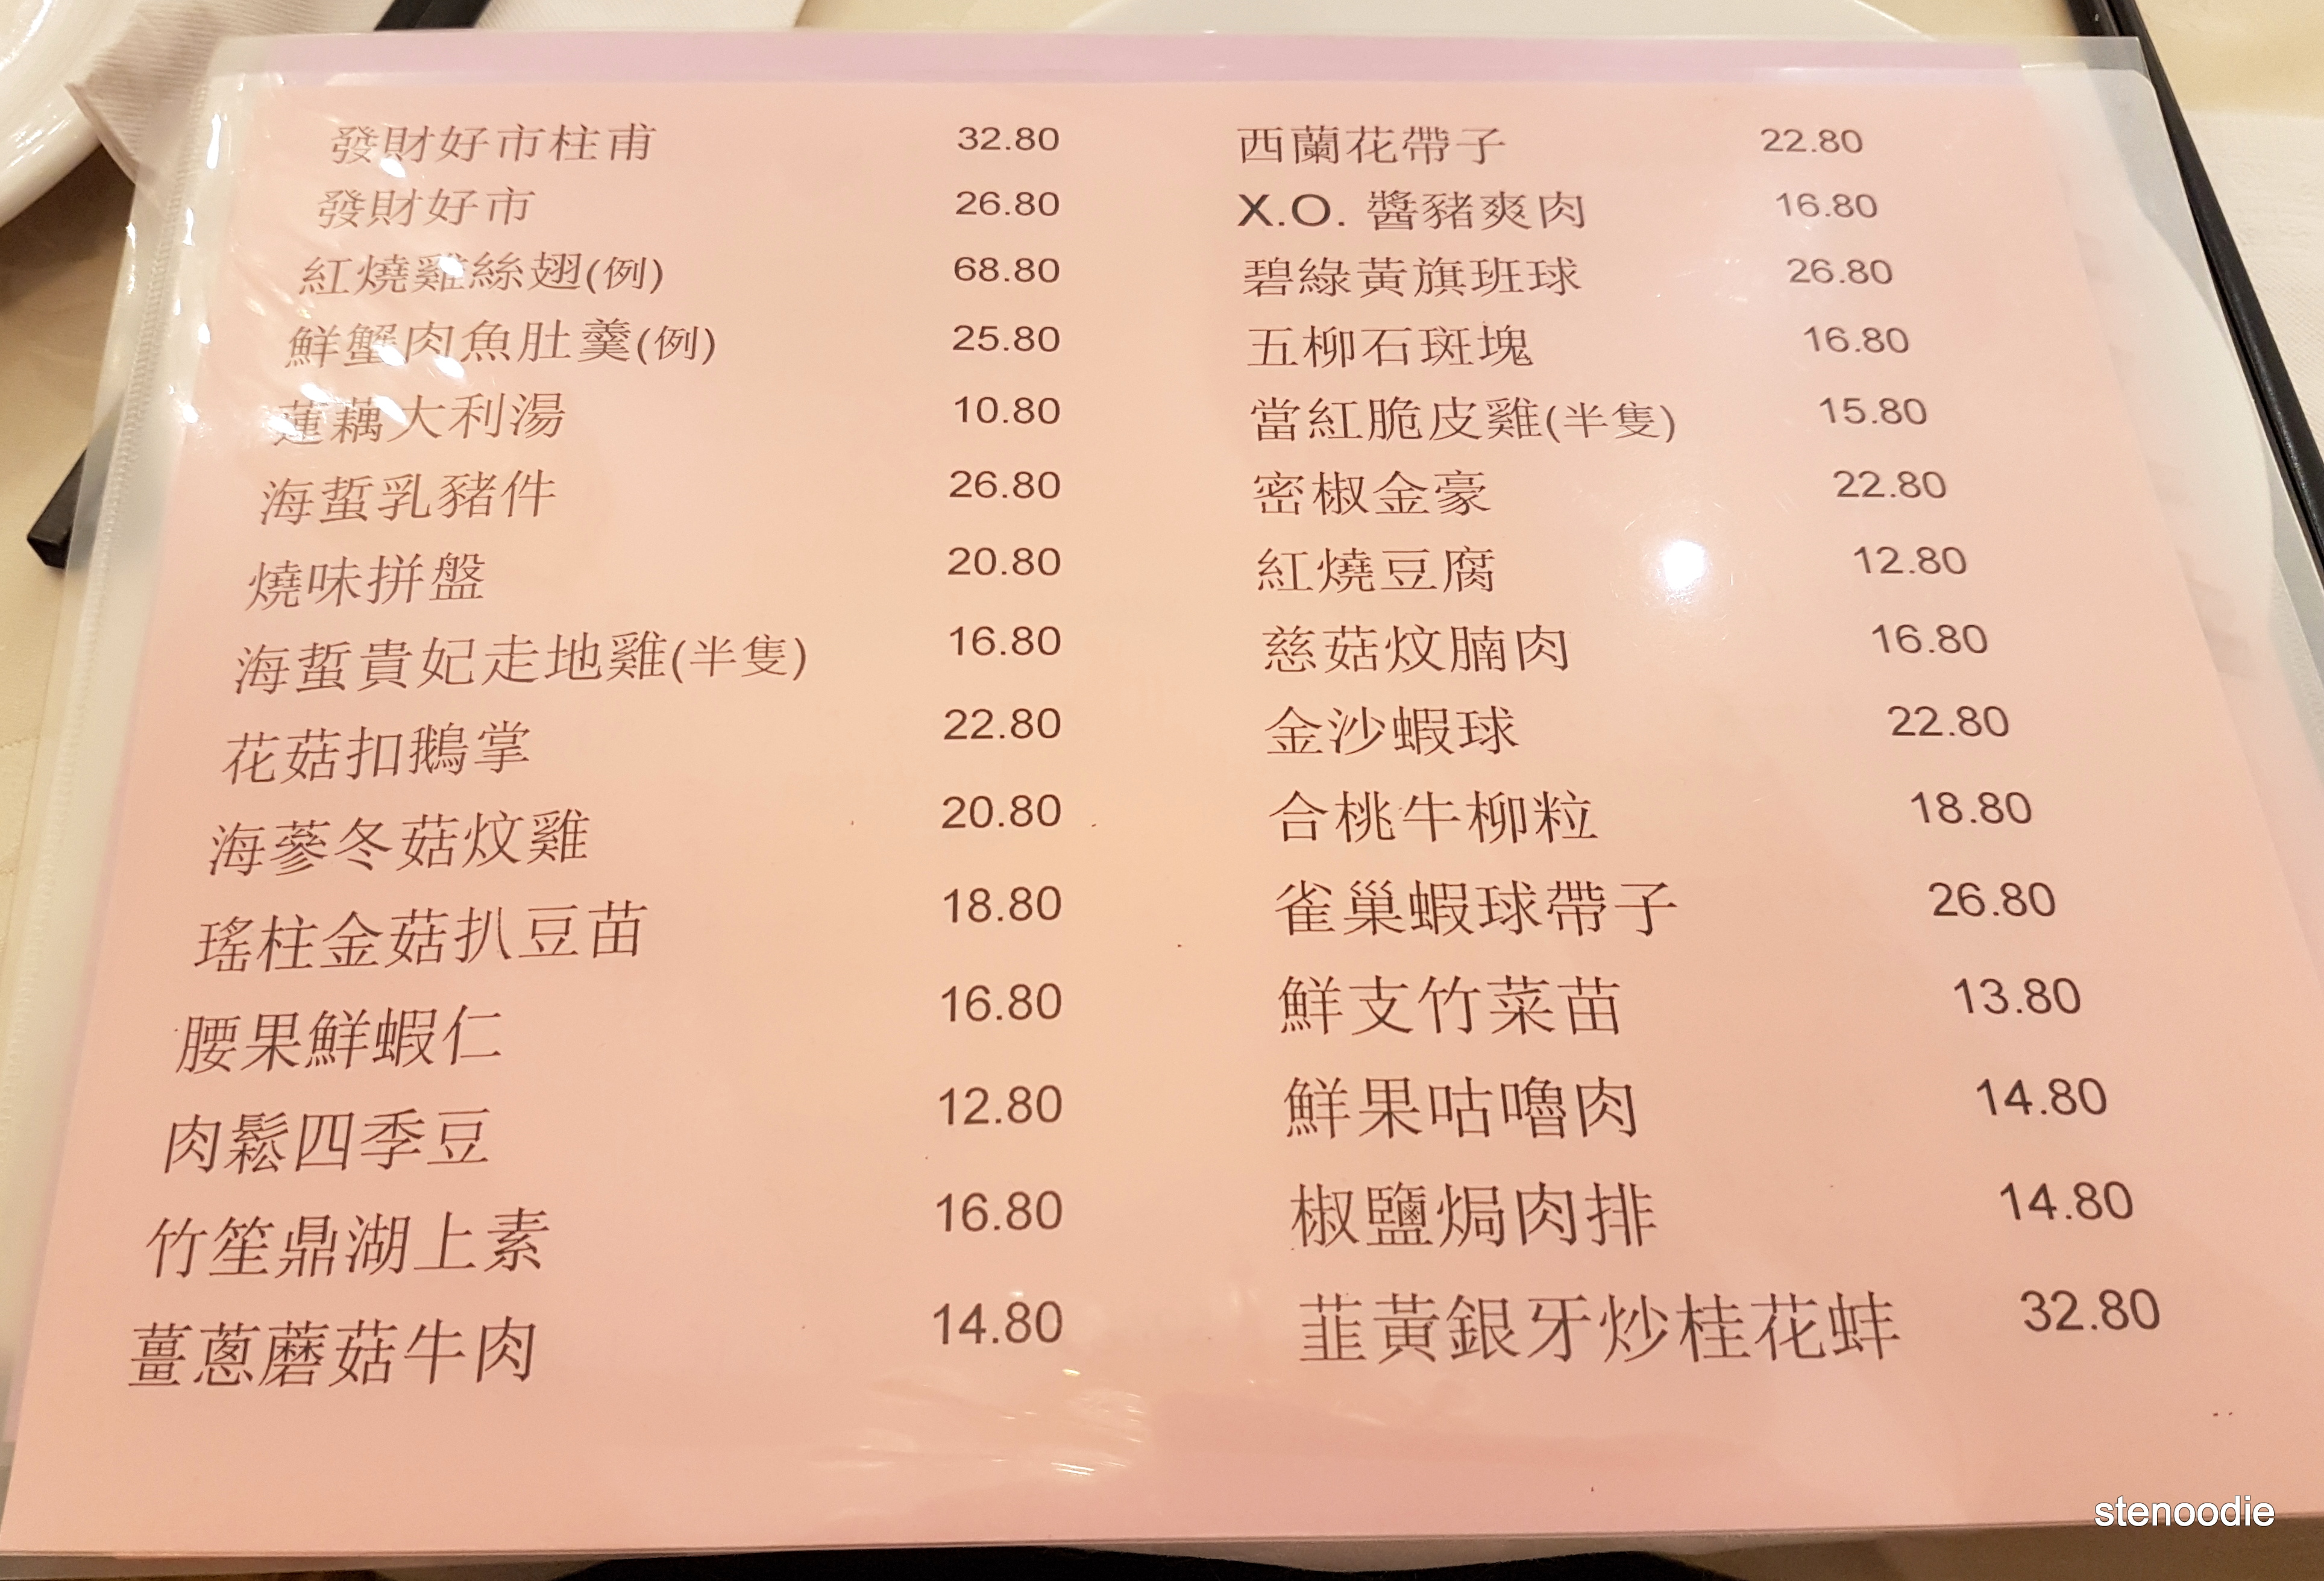 Ritzy Palace Chinese Cuisine dinner menu and prices